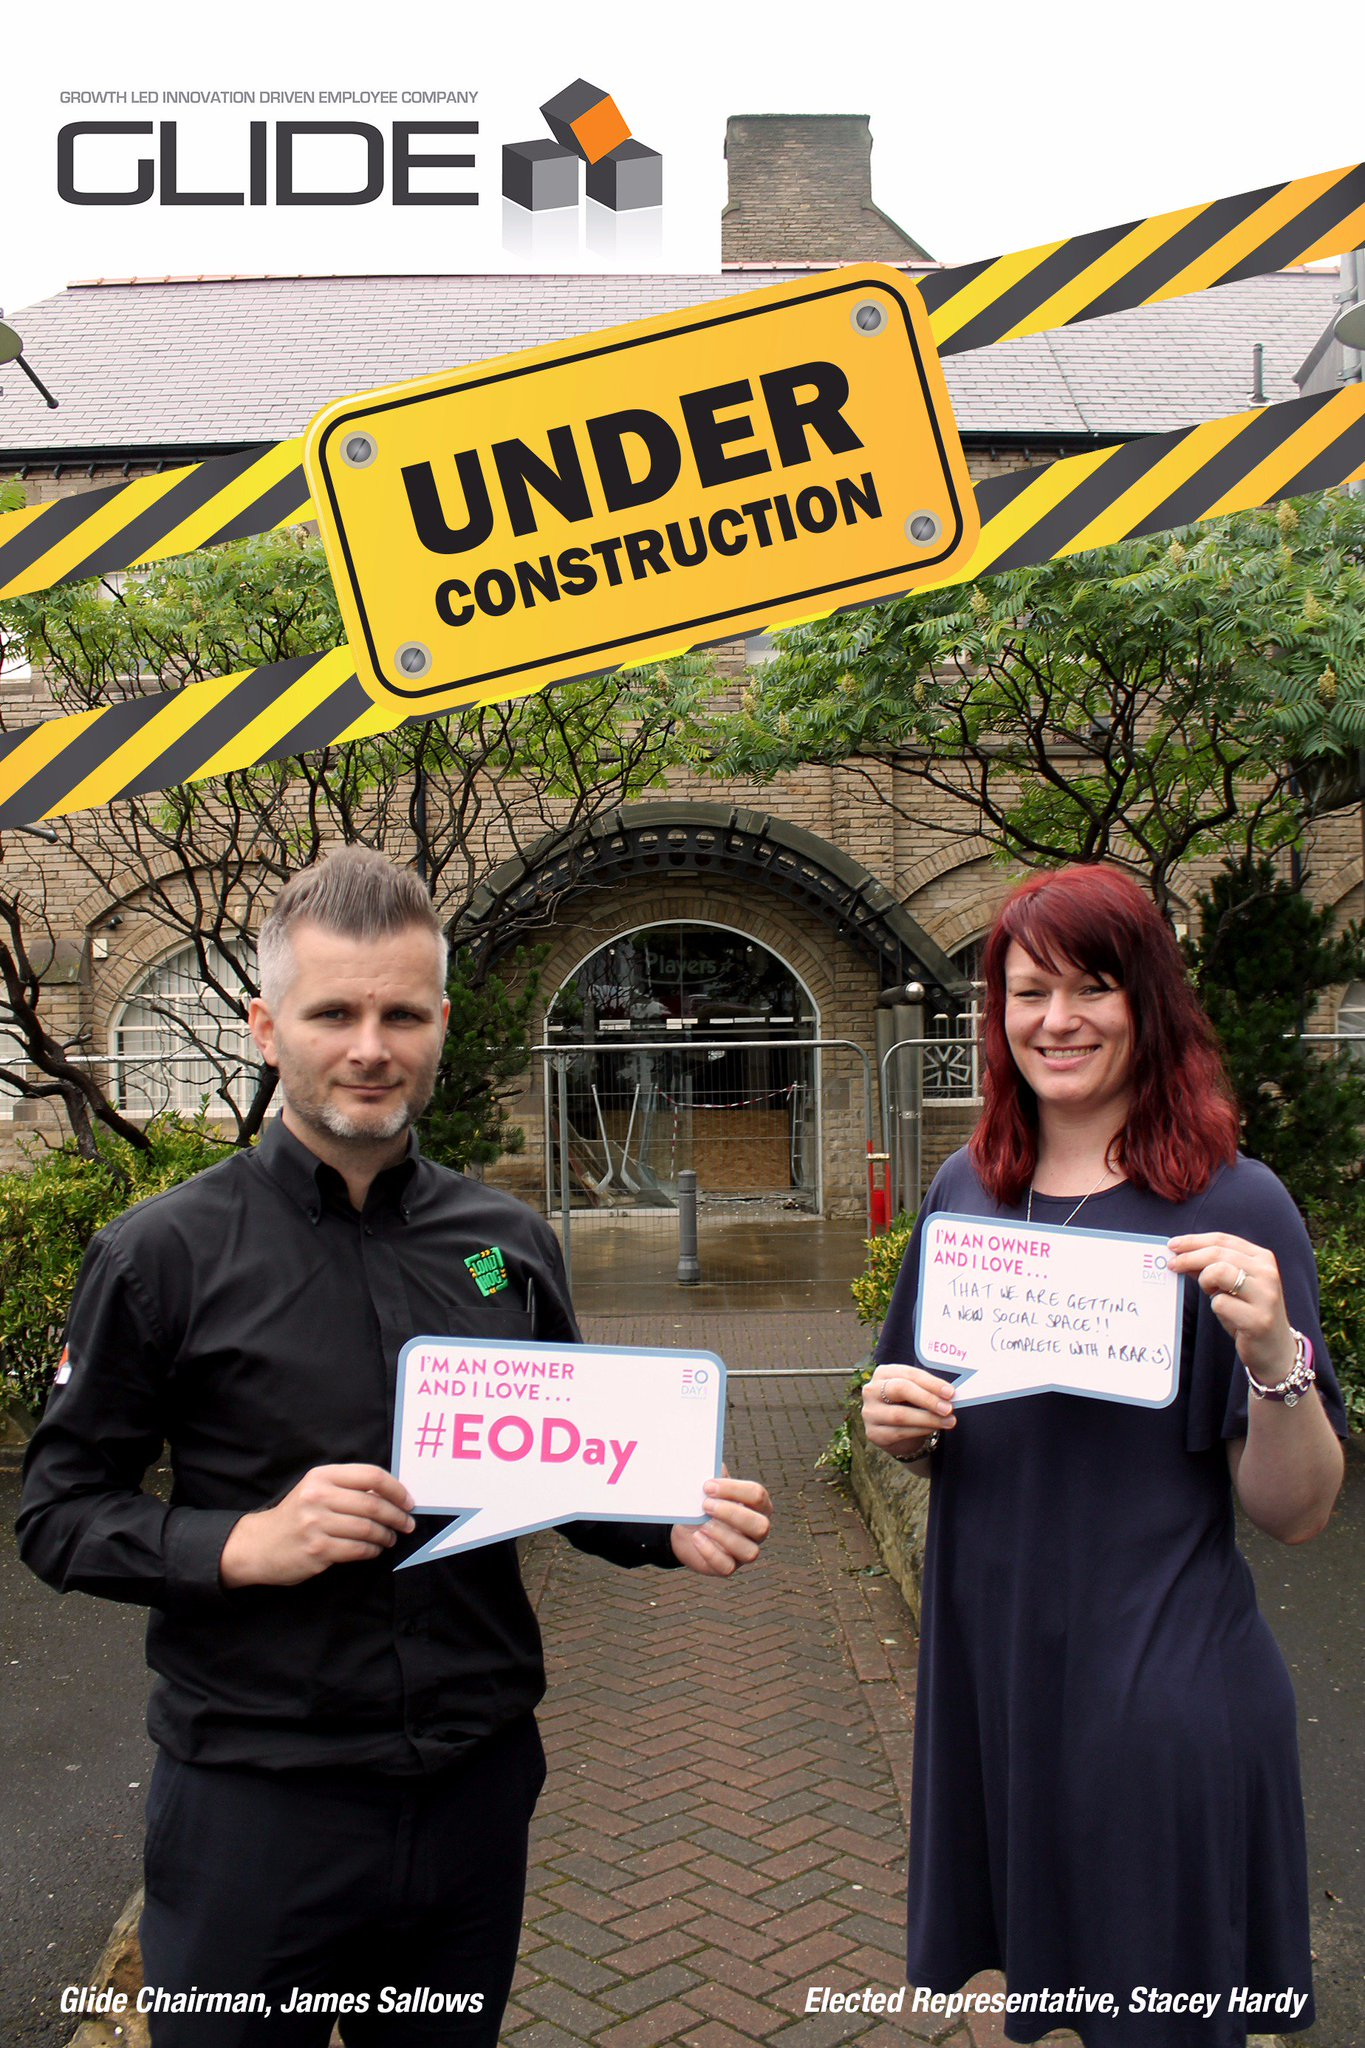 Happy #EODay everyone! We're excited about our new Employee Owned venture currently under construction housing a new training academy https://t.co/avsuYCXuYx